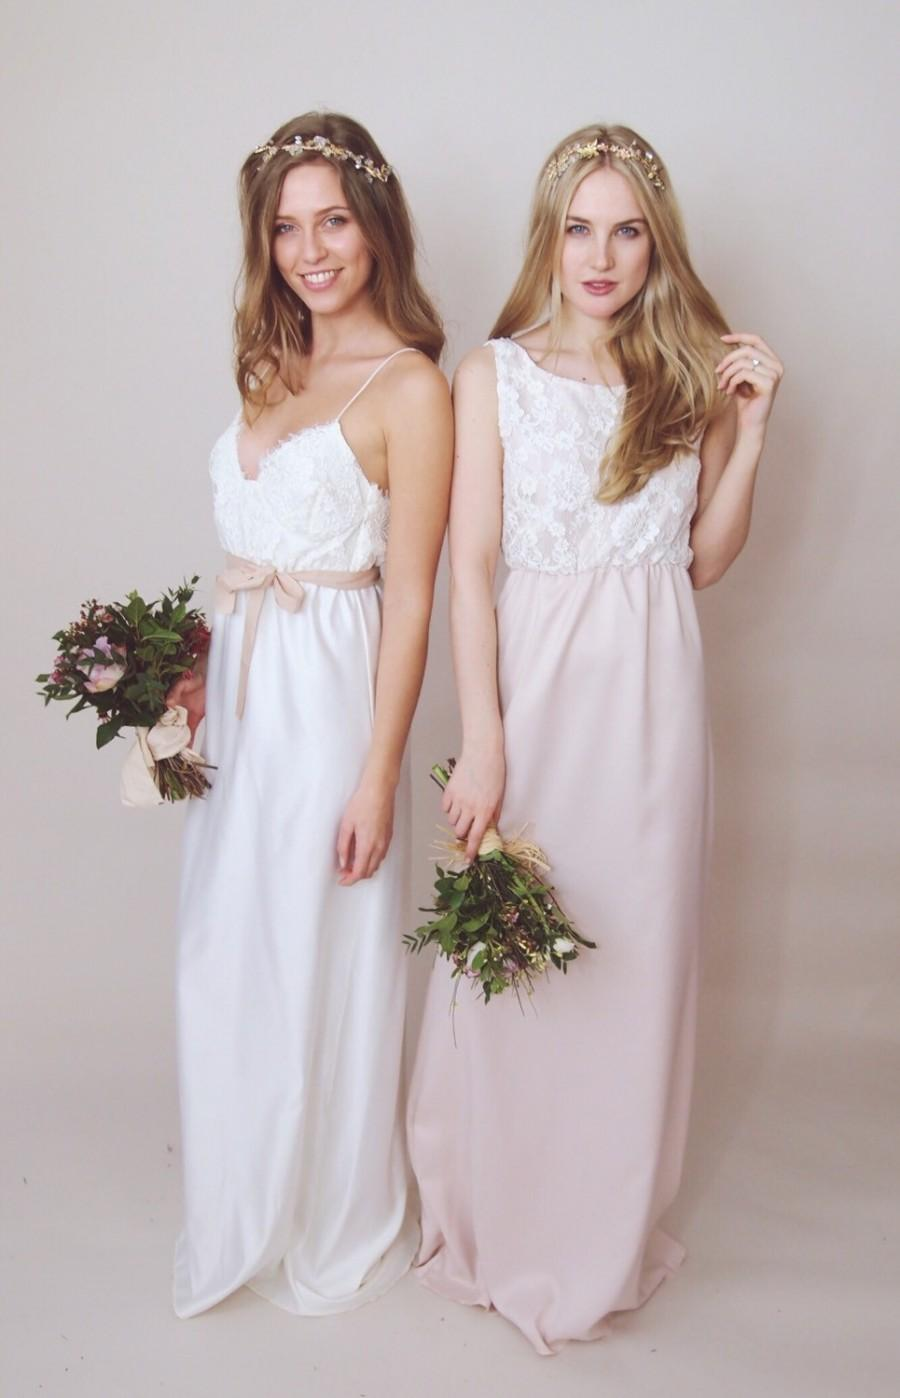 539e146a4c6bc HOLLIE - Lace maxi dress, Bridesmaid Dress, Corded lace and duchess satin,  soft pink, dusky pink, nude, blush, ivory, cream - made to order